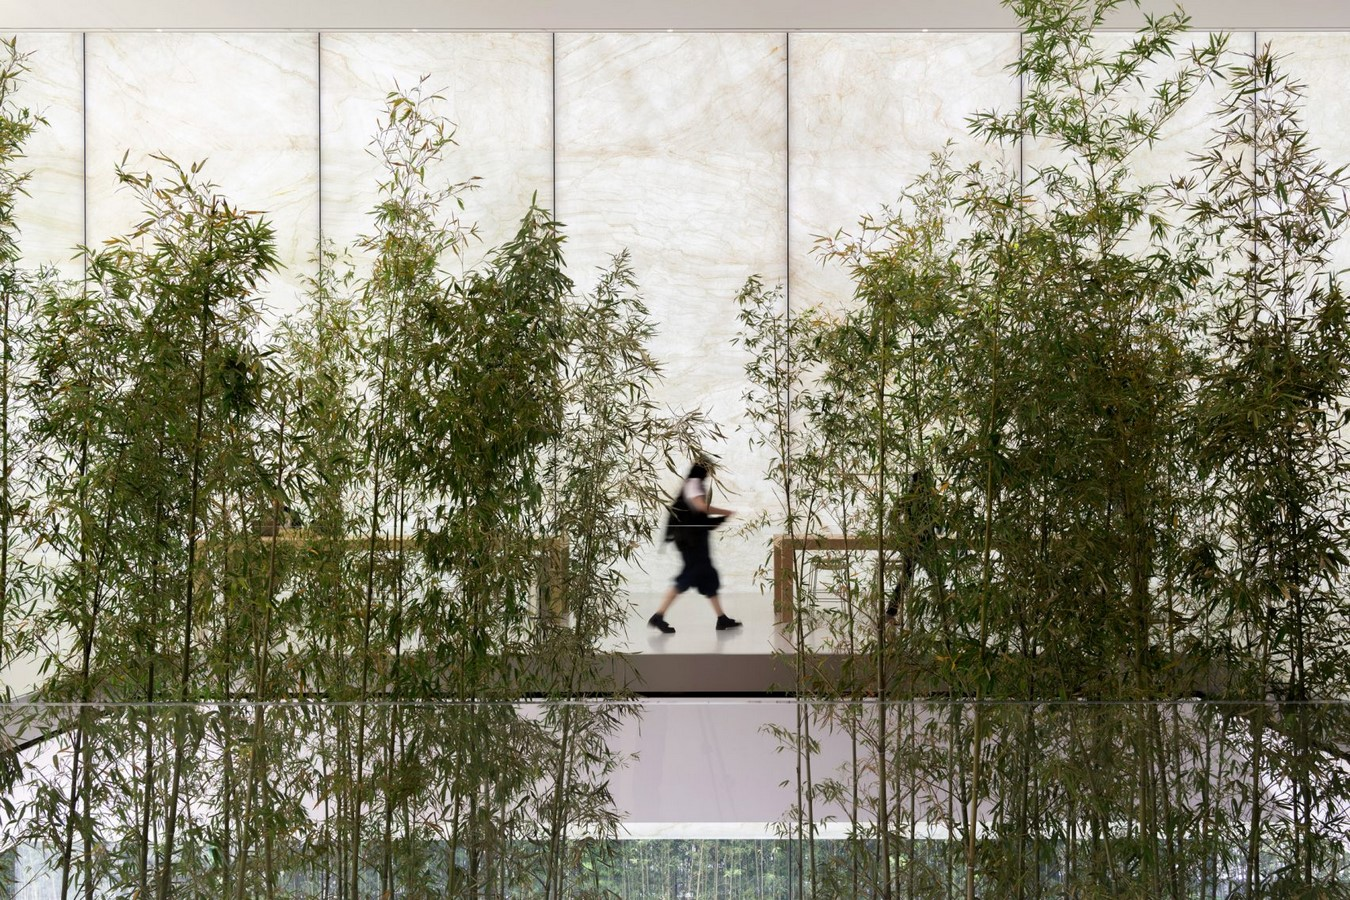 Designs that Engineer Translucency in Architecture Sheet4